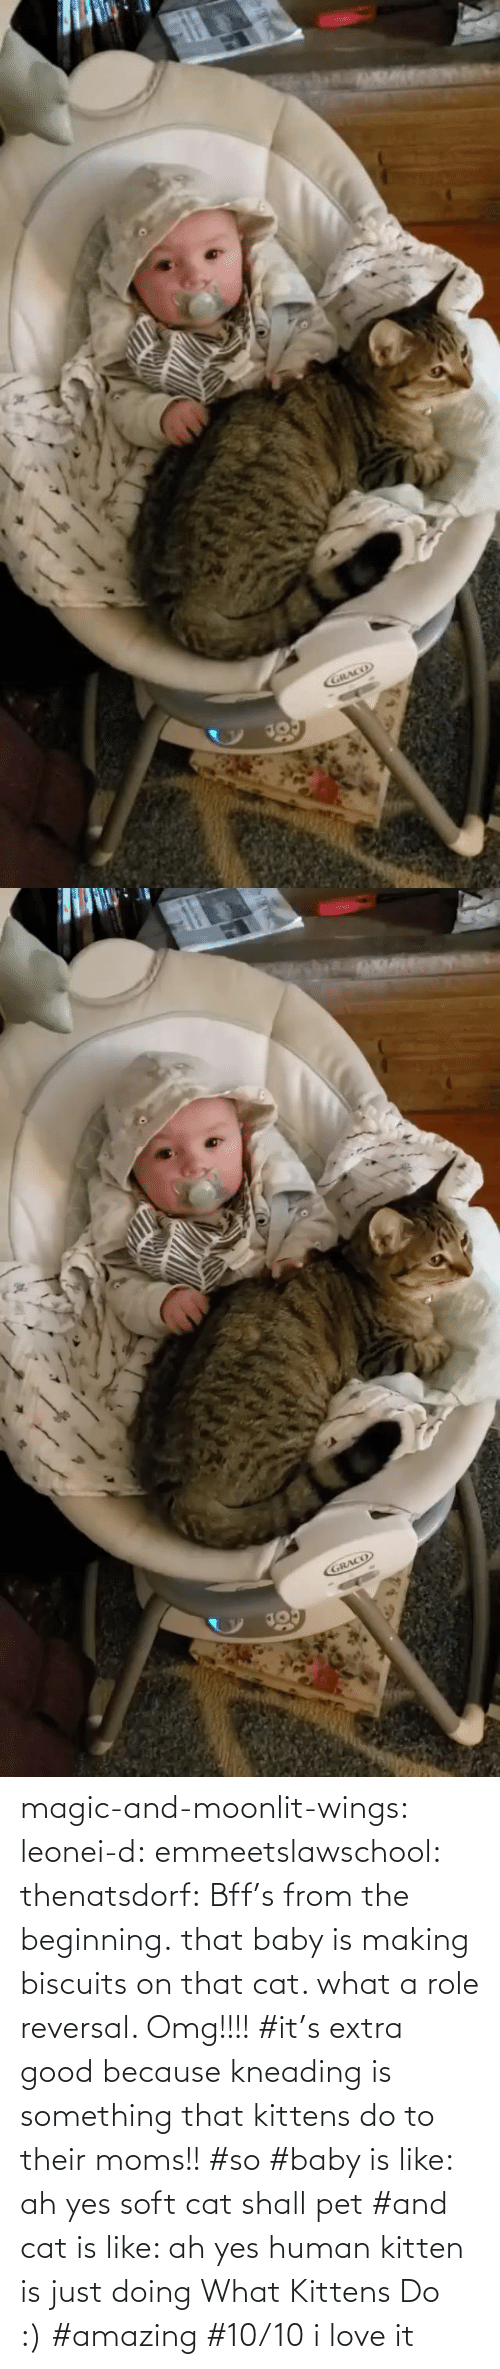 pet: magic-and-moonlit-wings: leonei-d:  emmeetslawschool:  thenatsdorf: Bff's from the beginning. that baby is making biscuits on that cat. what a role reversal.    Omg!!!!     #it's extra good because kneading is something that kittens do to their moms!! #so #baby is like: ah yes soft cat shall pet #and cat is like: ah yes human kitten is just doing What Kittens Do :) #amazing #10/10 i love it